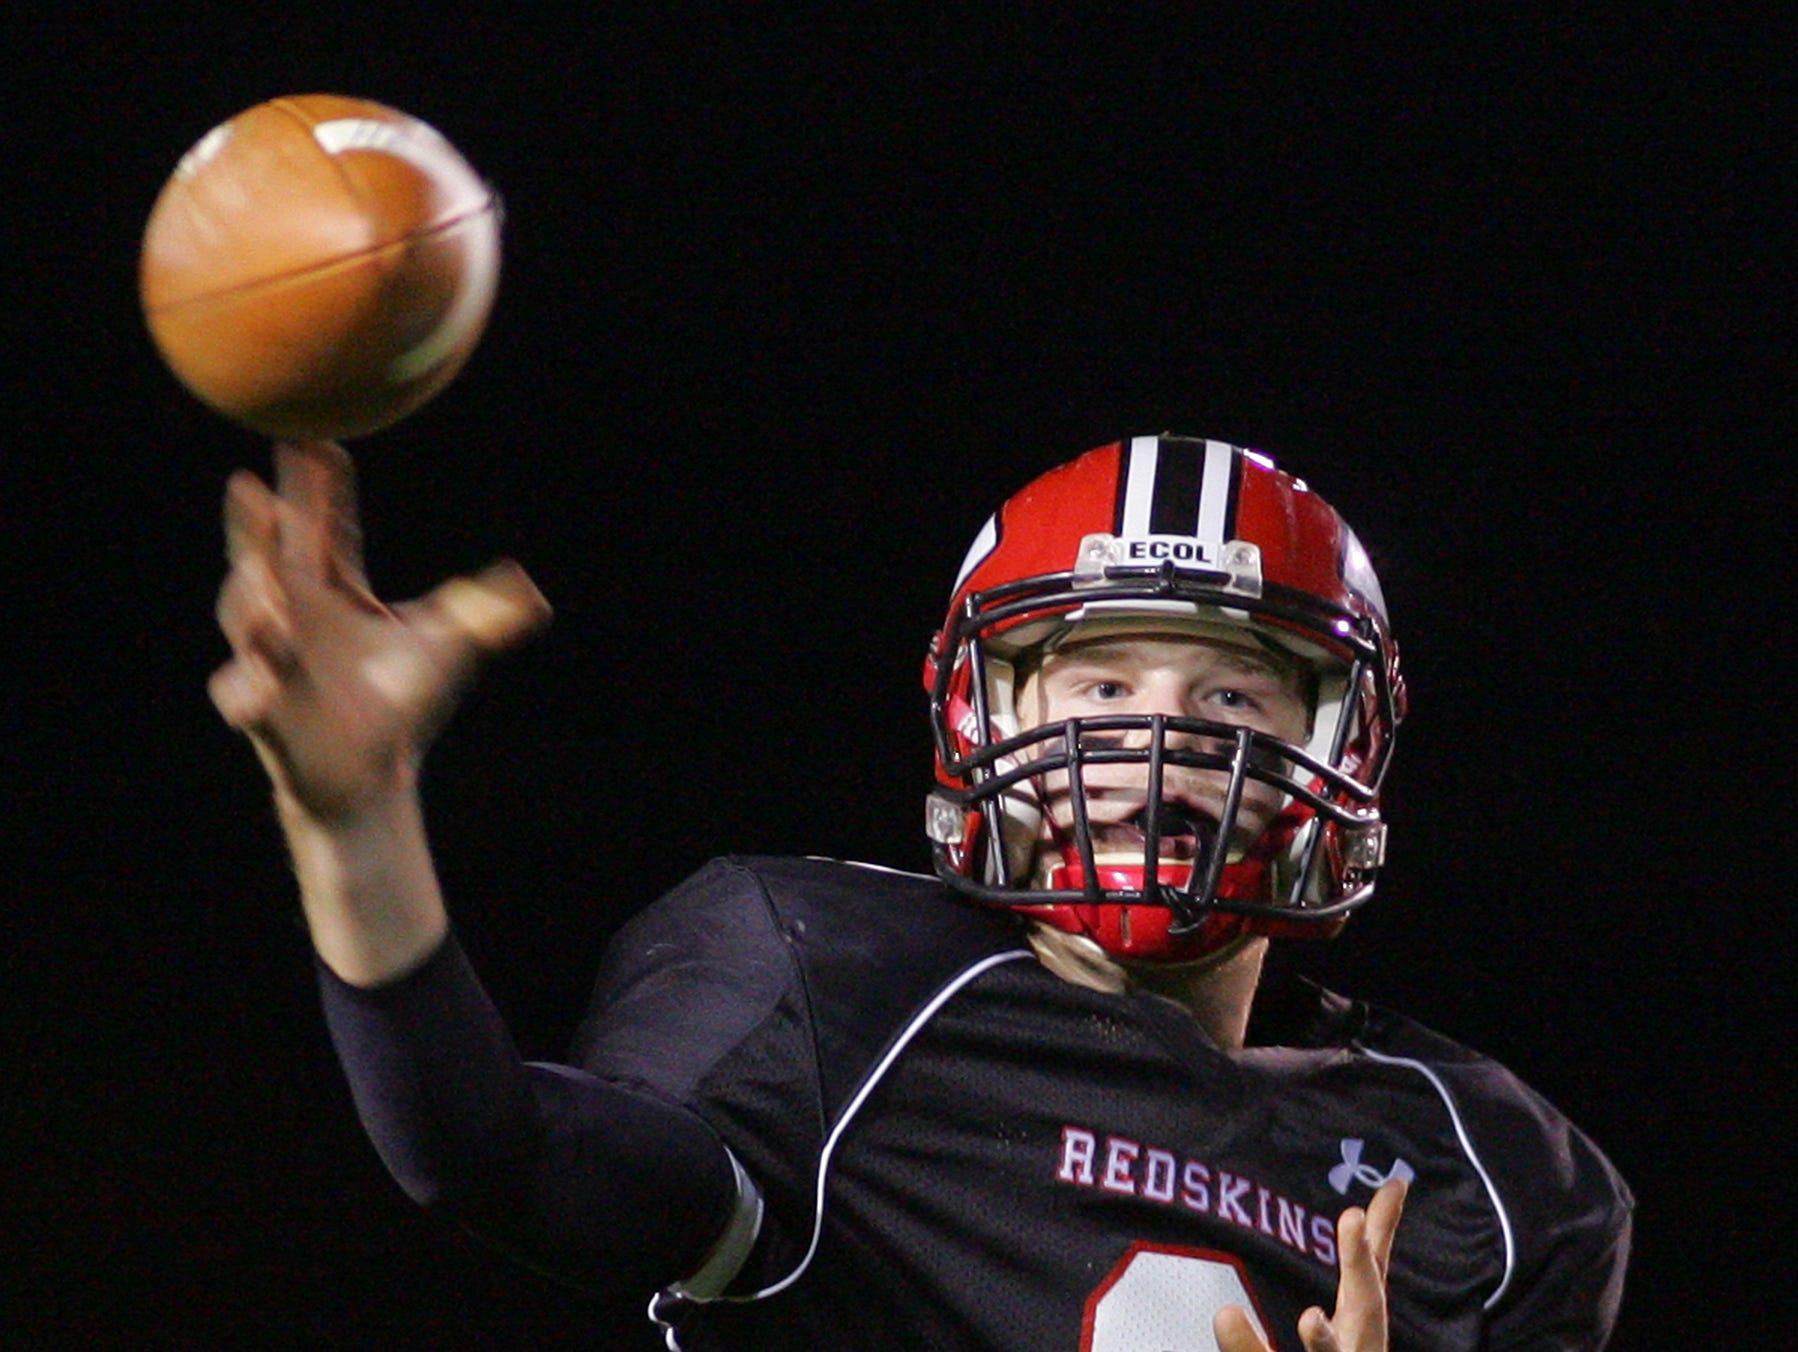 Coshocton falls to Dover 35-21.